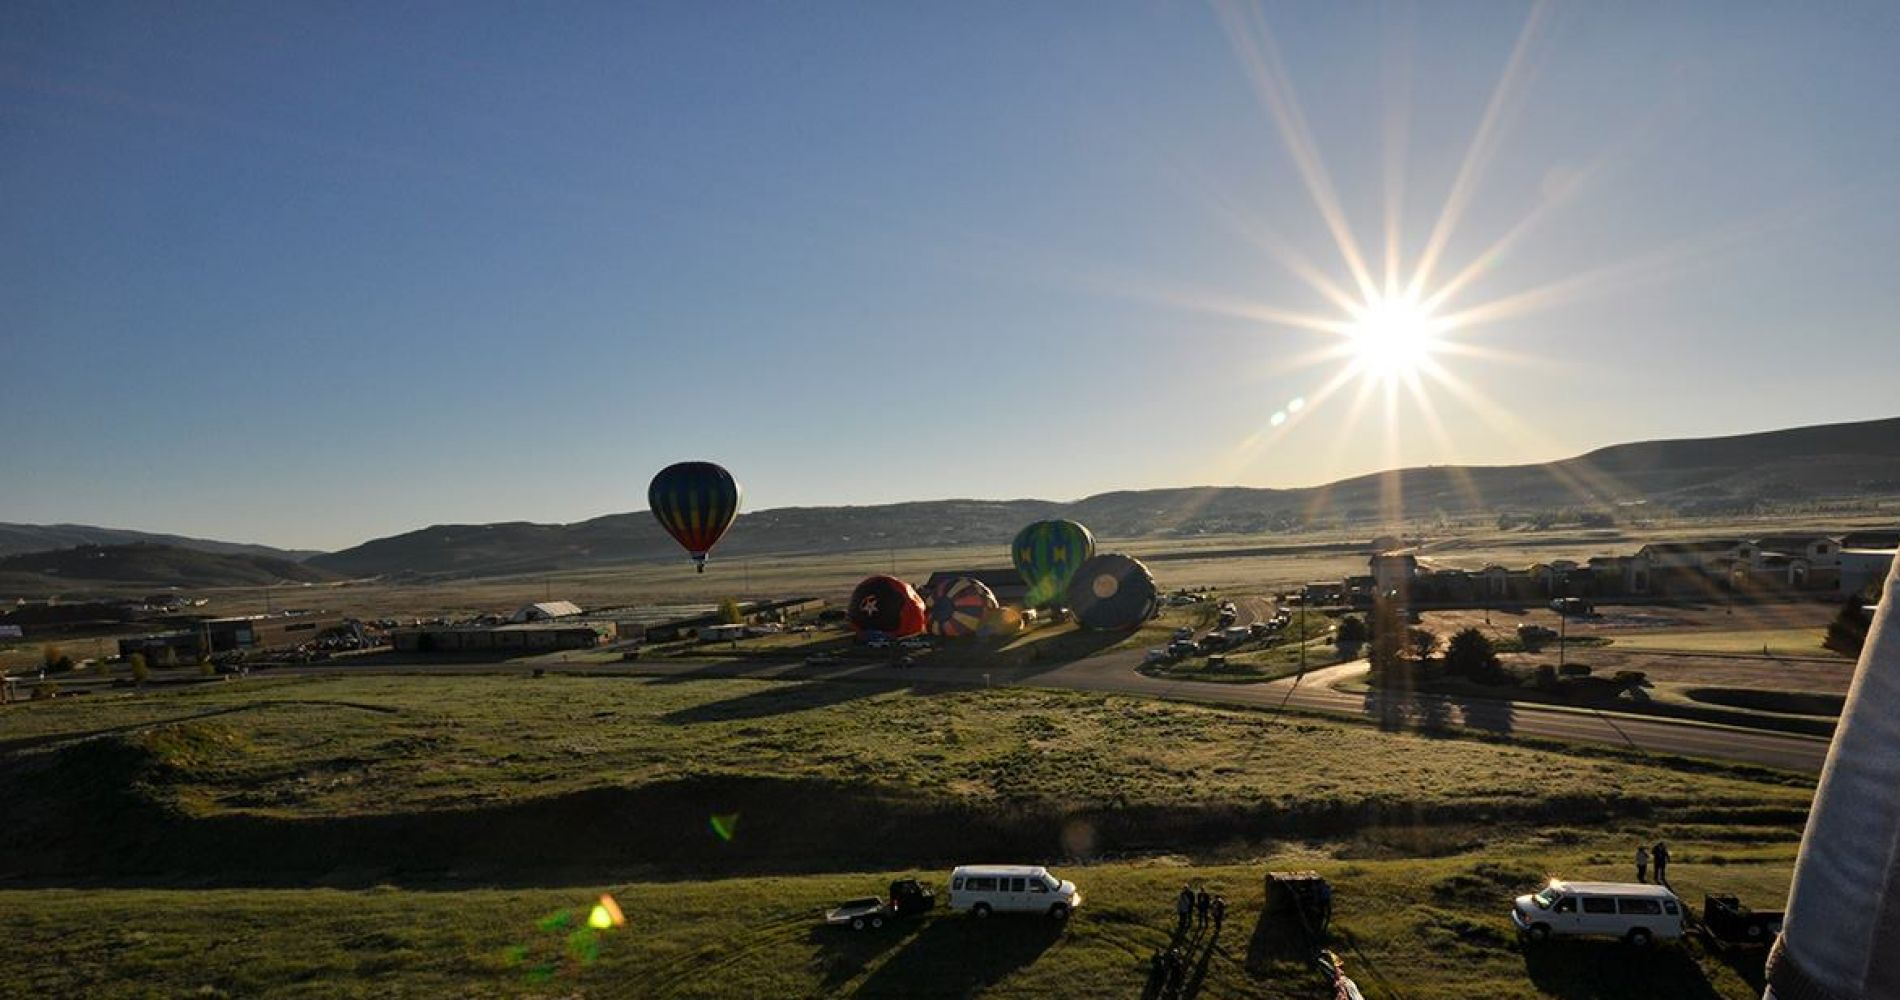 Hot air balloon flight over Park City, Utah